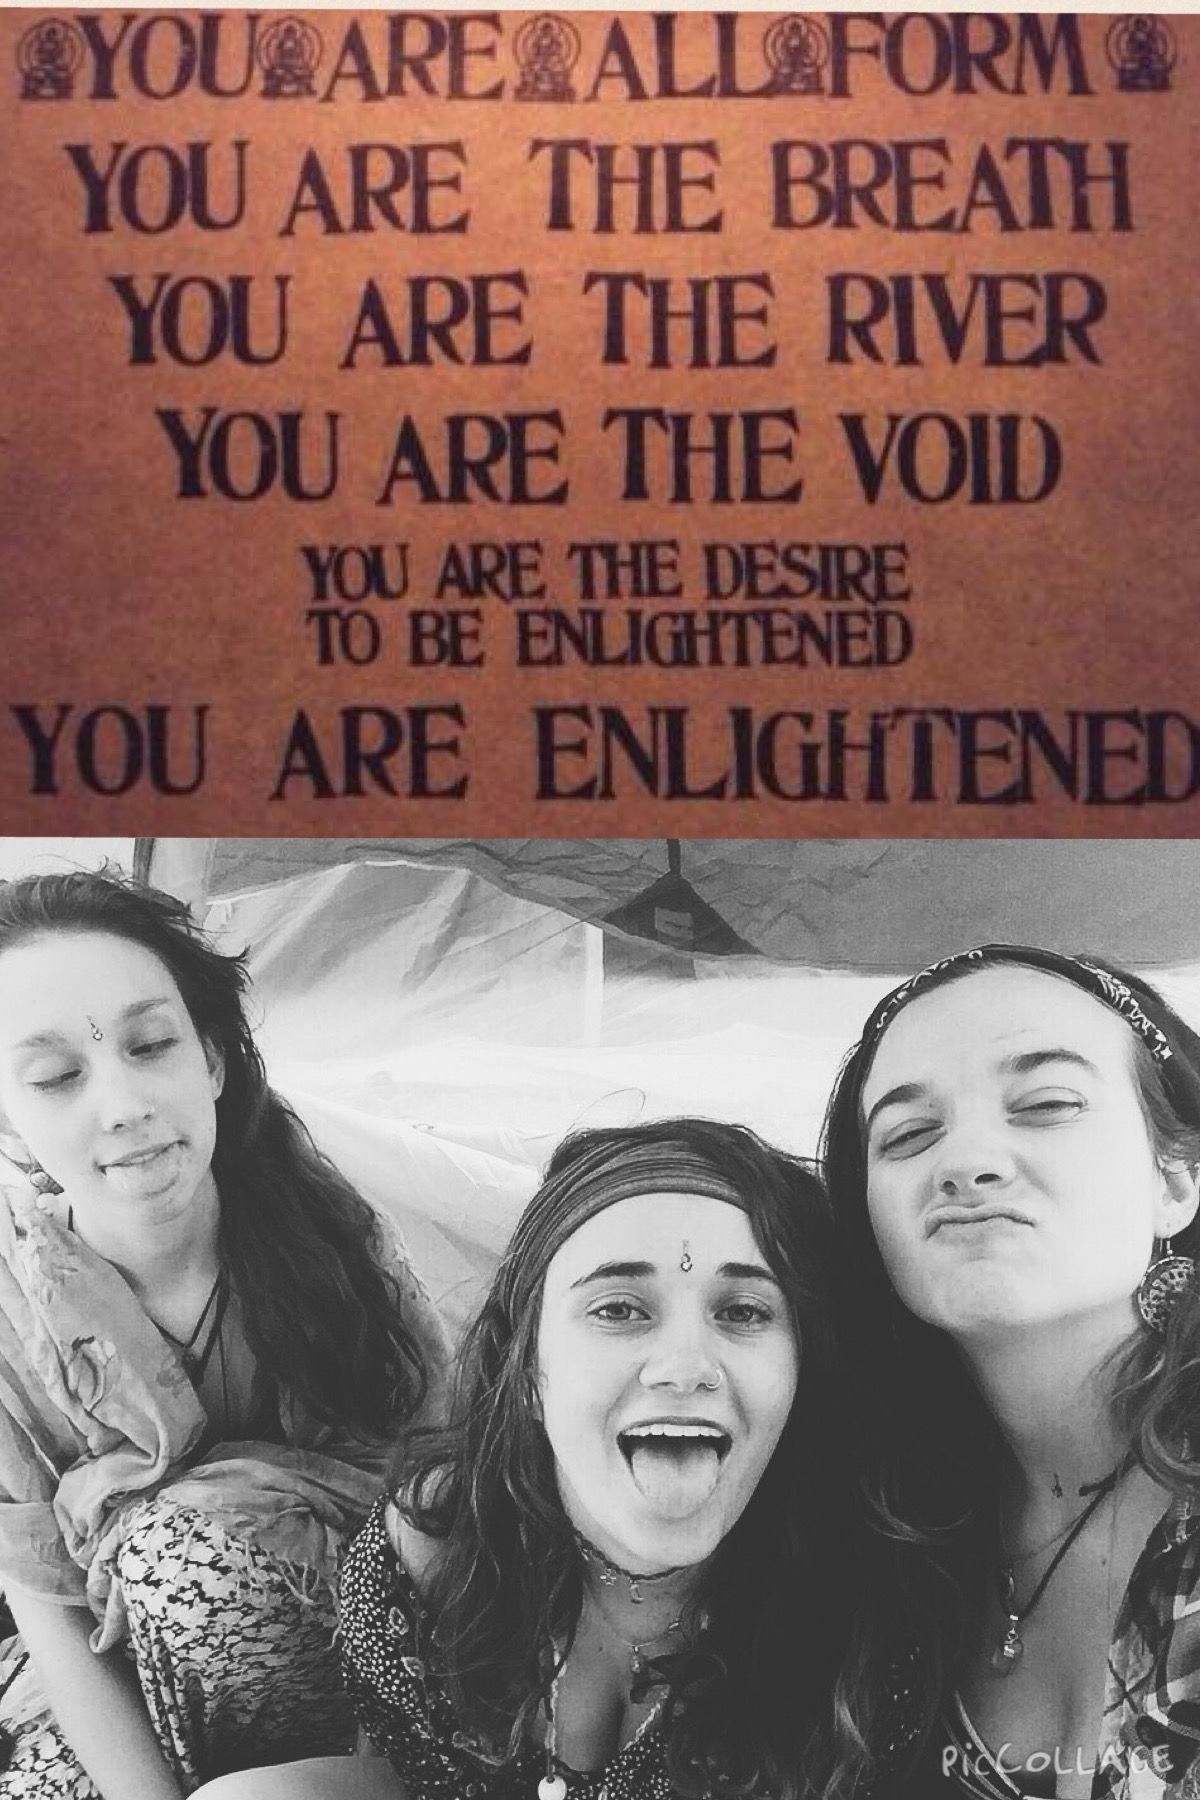 you are the river: you are the void